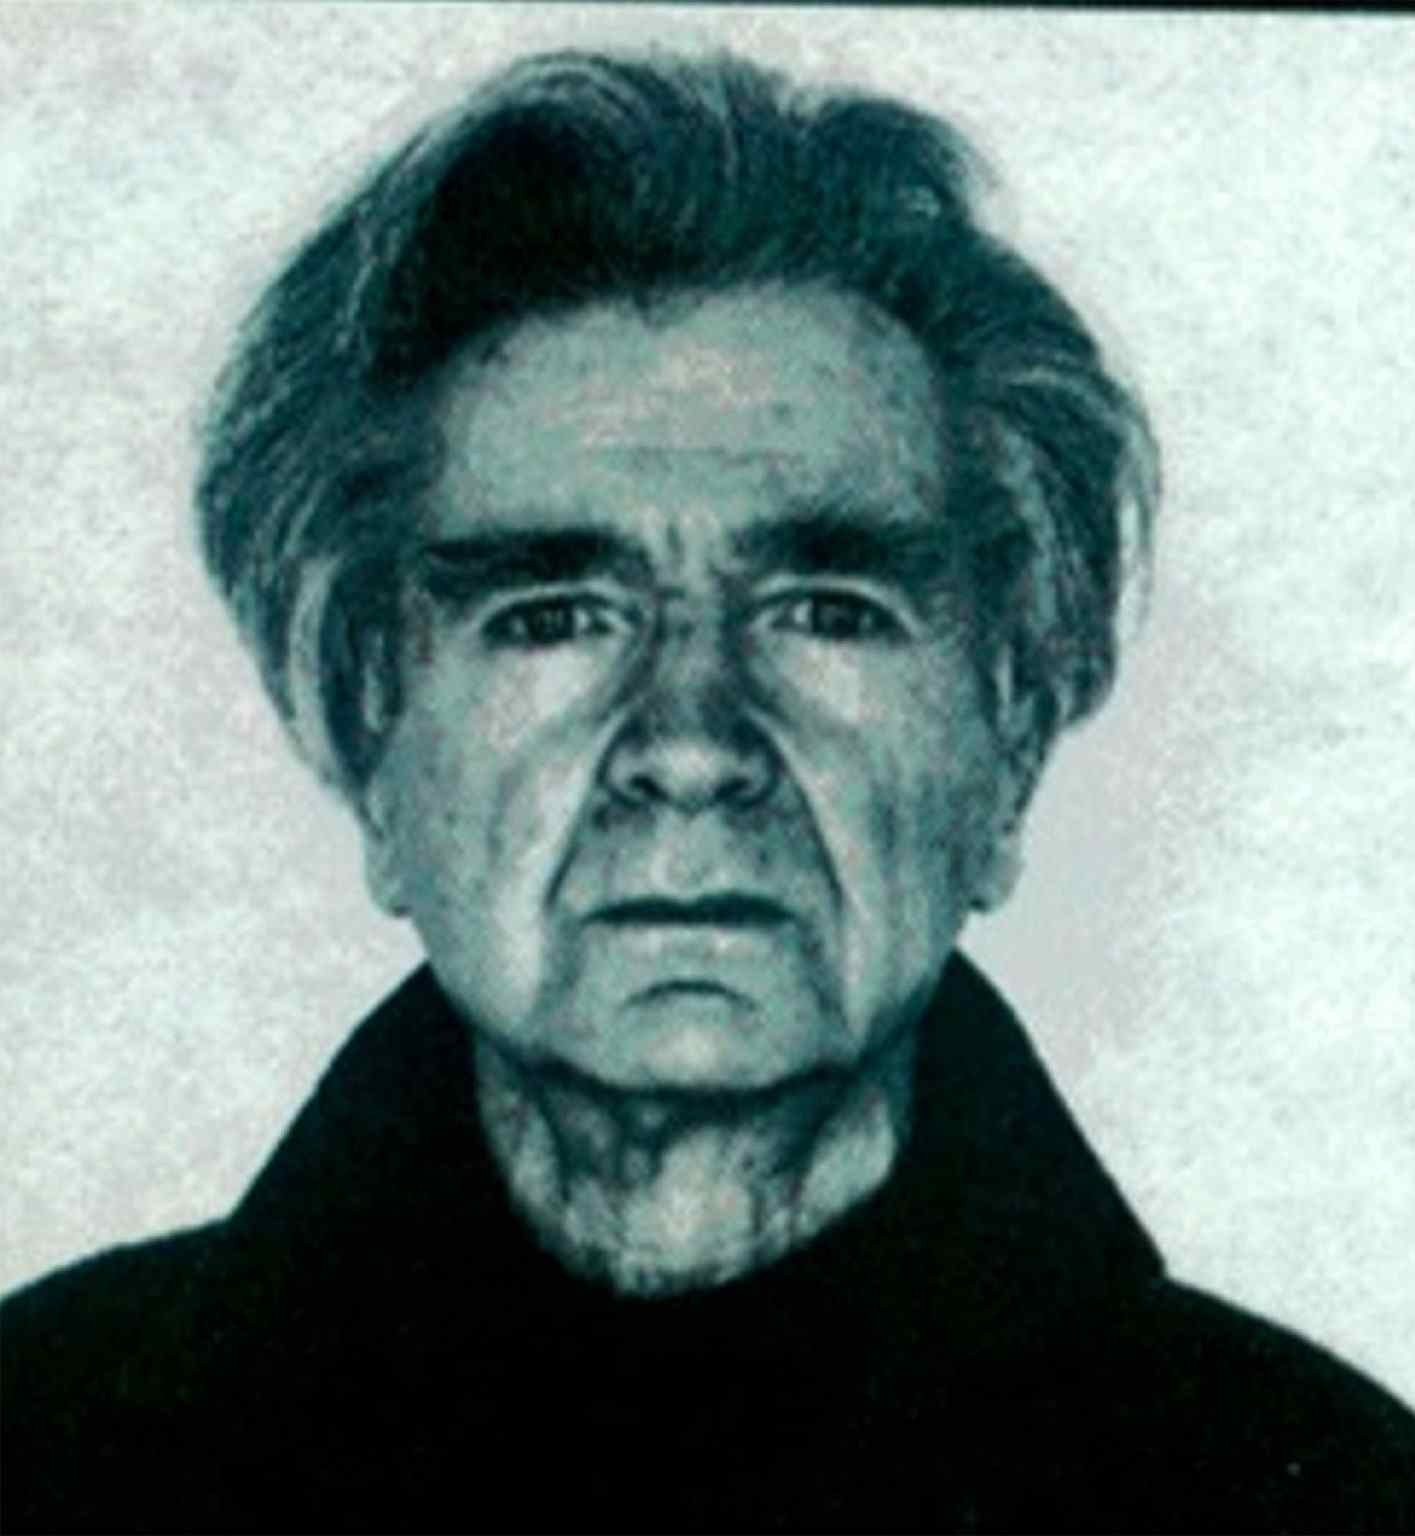 La lucidez: martirio permanente, inimaginable proeza. Cioran.